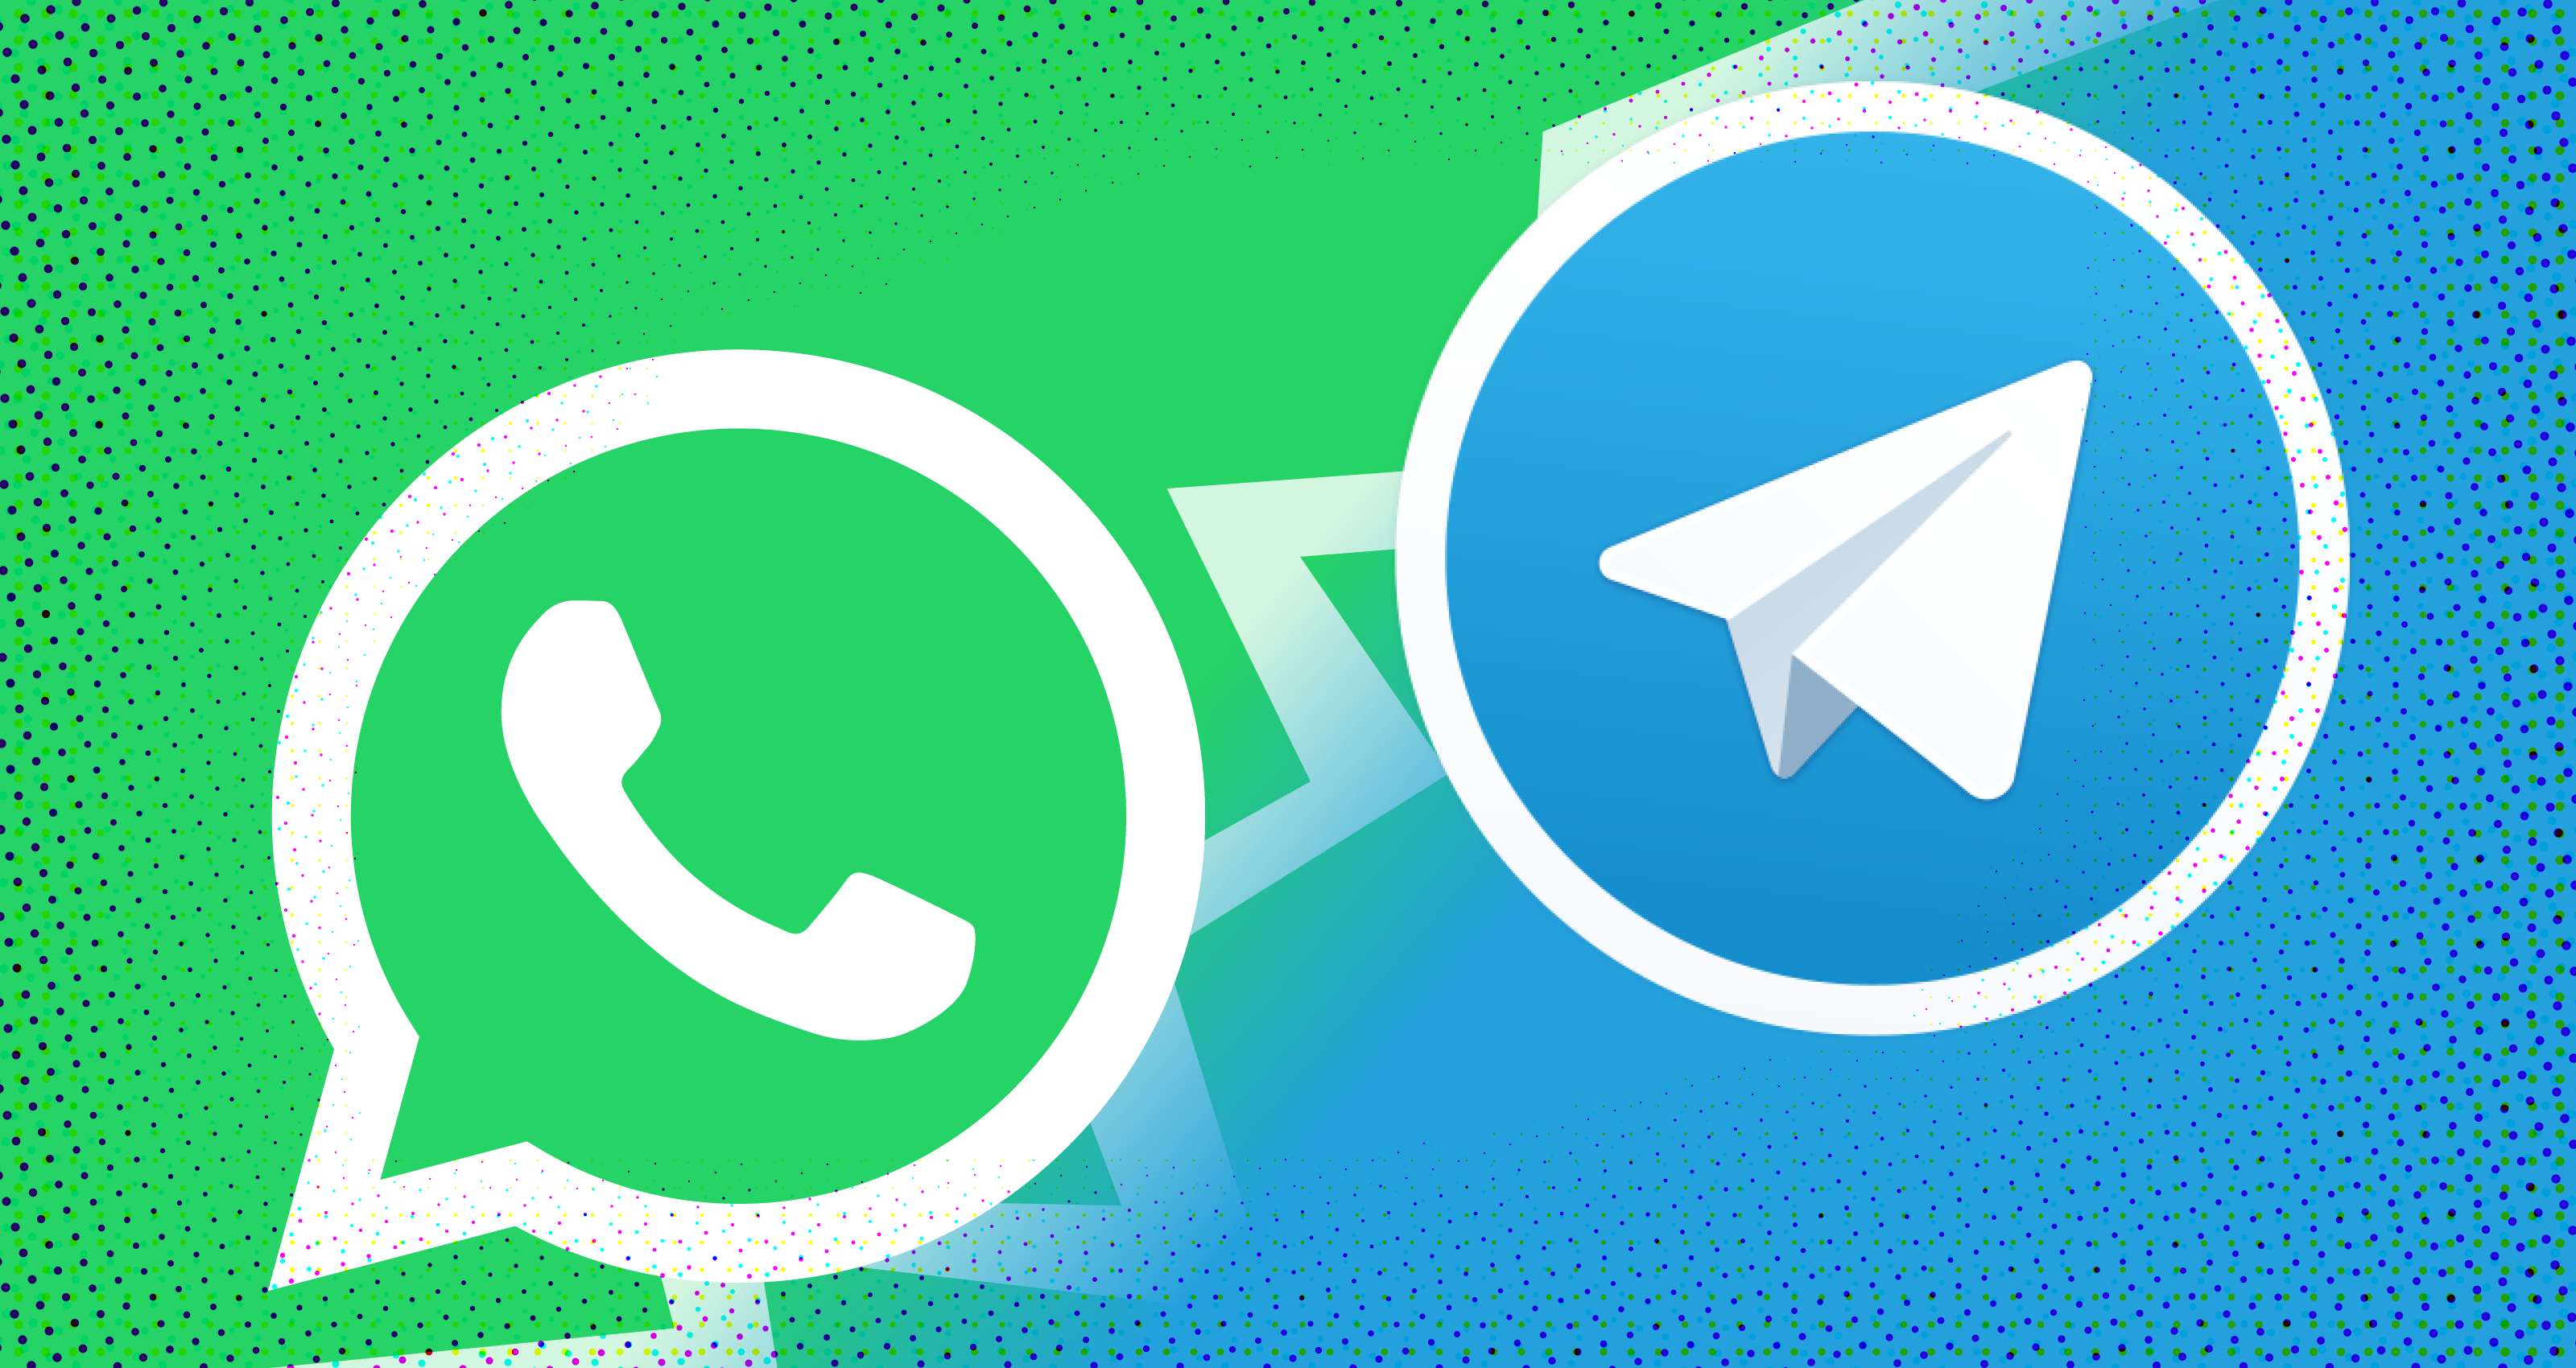 Latest update to WhatsApp brings new features in WhatsApp grpups